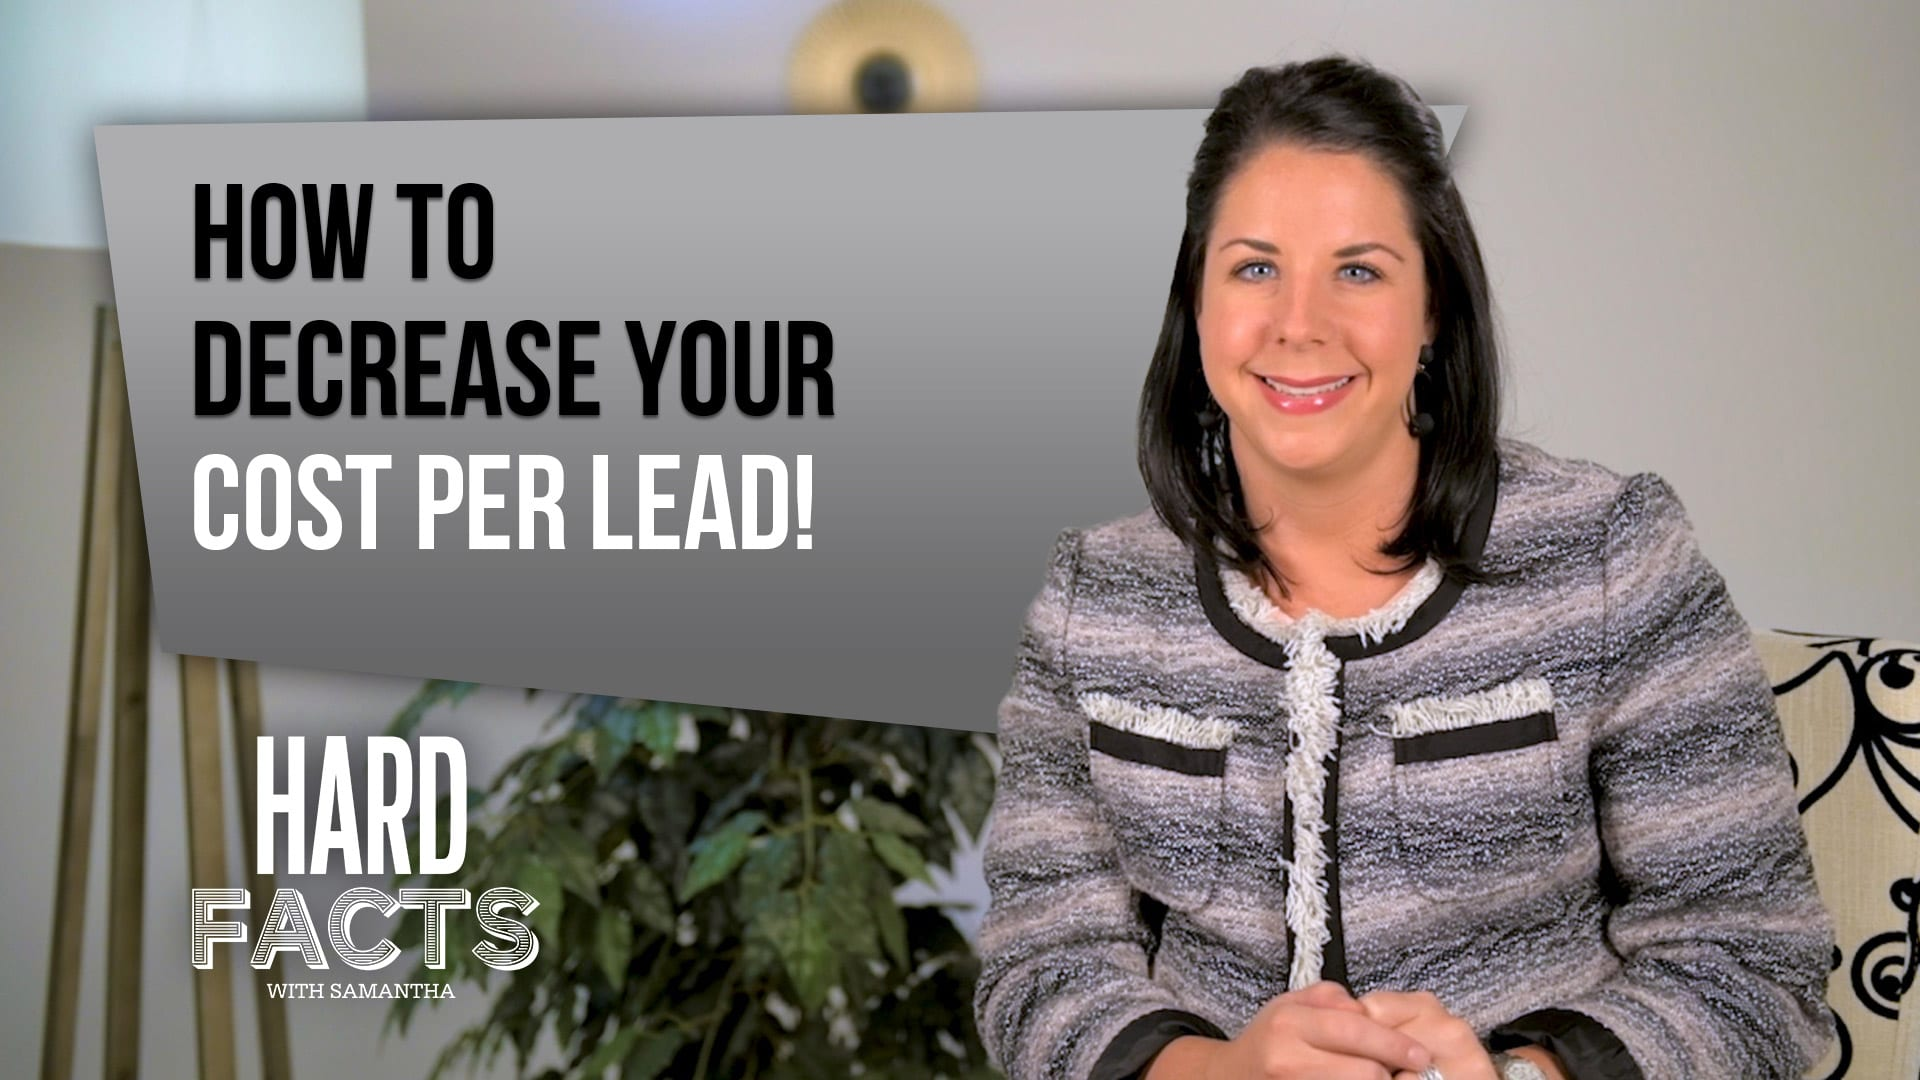 How to Decrease Your Cost Per Lead